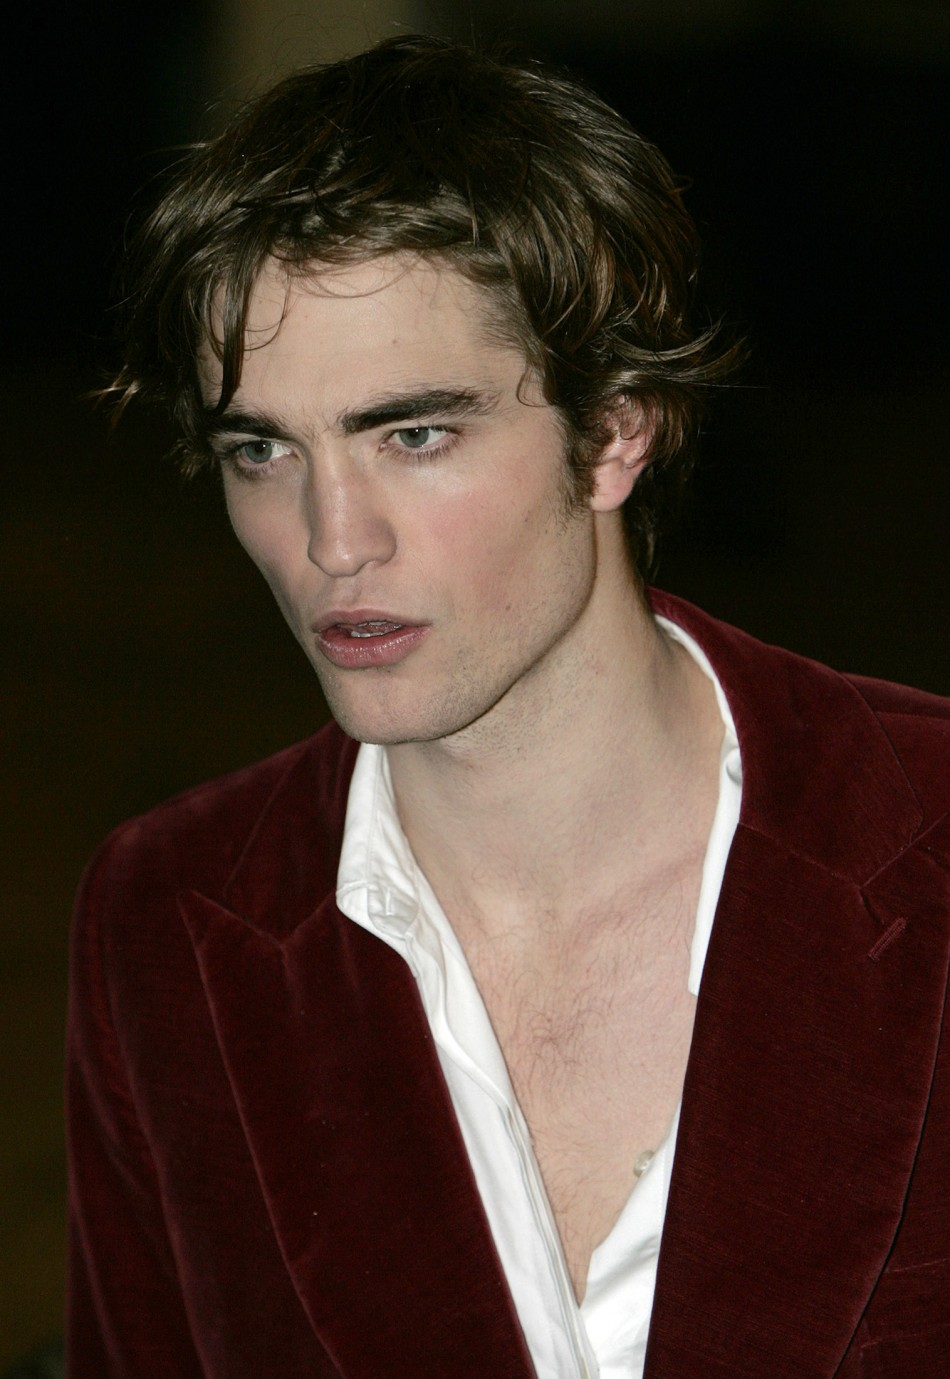 Robert Pattinson Voted Sexiest Man on the Planet ... Again ...